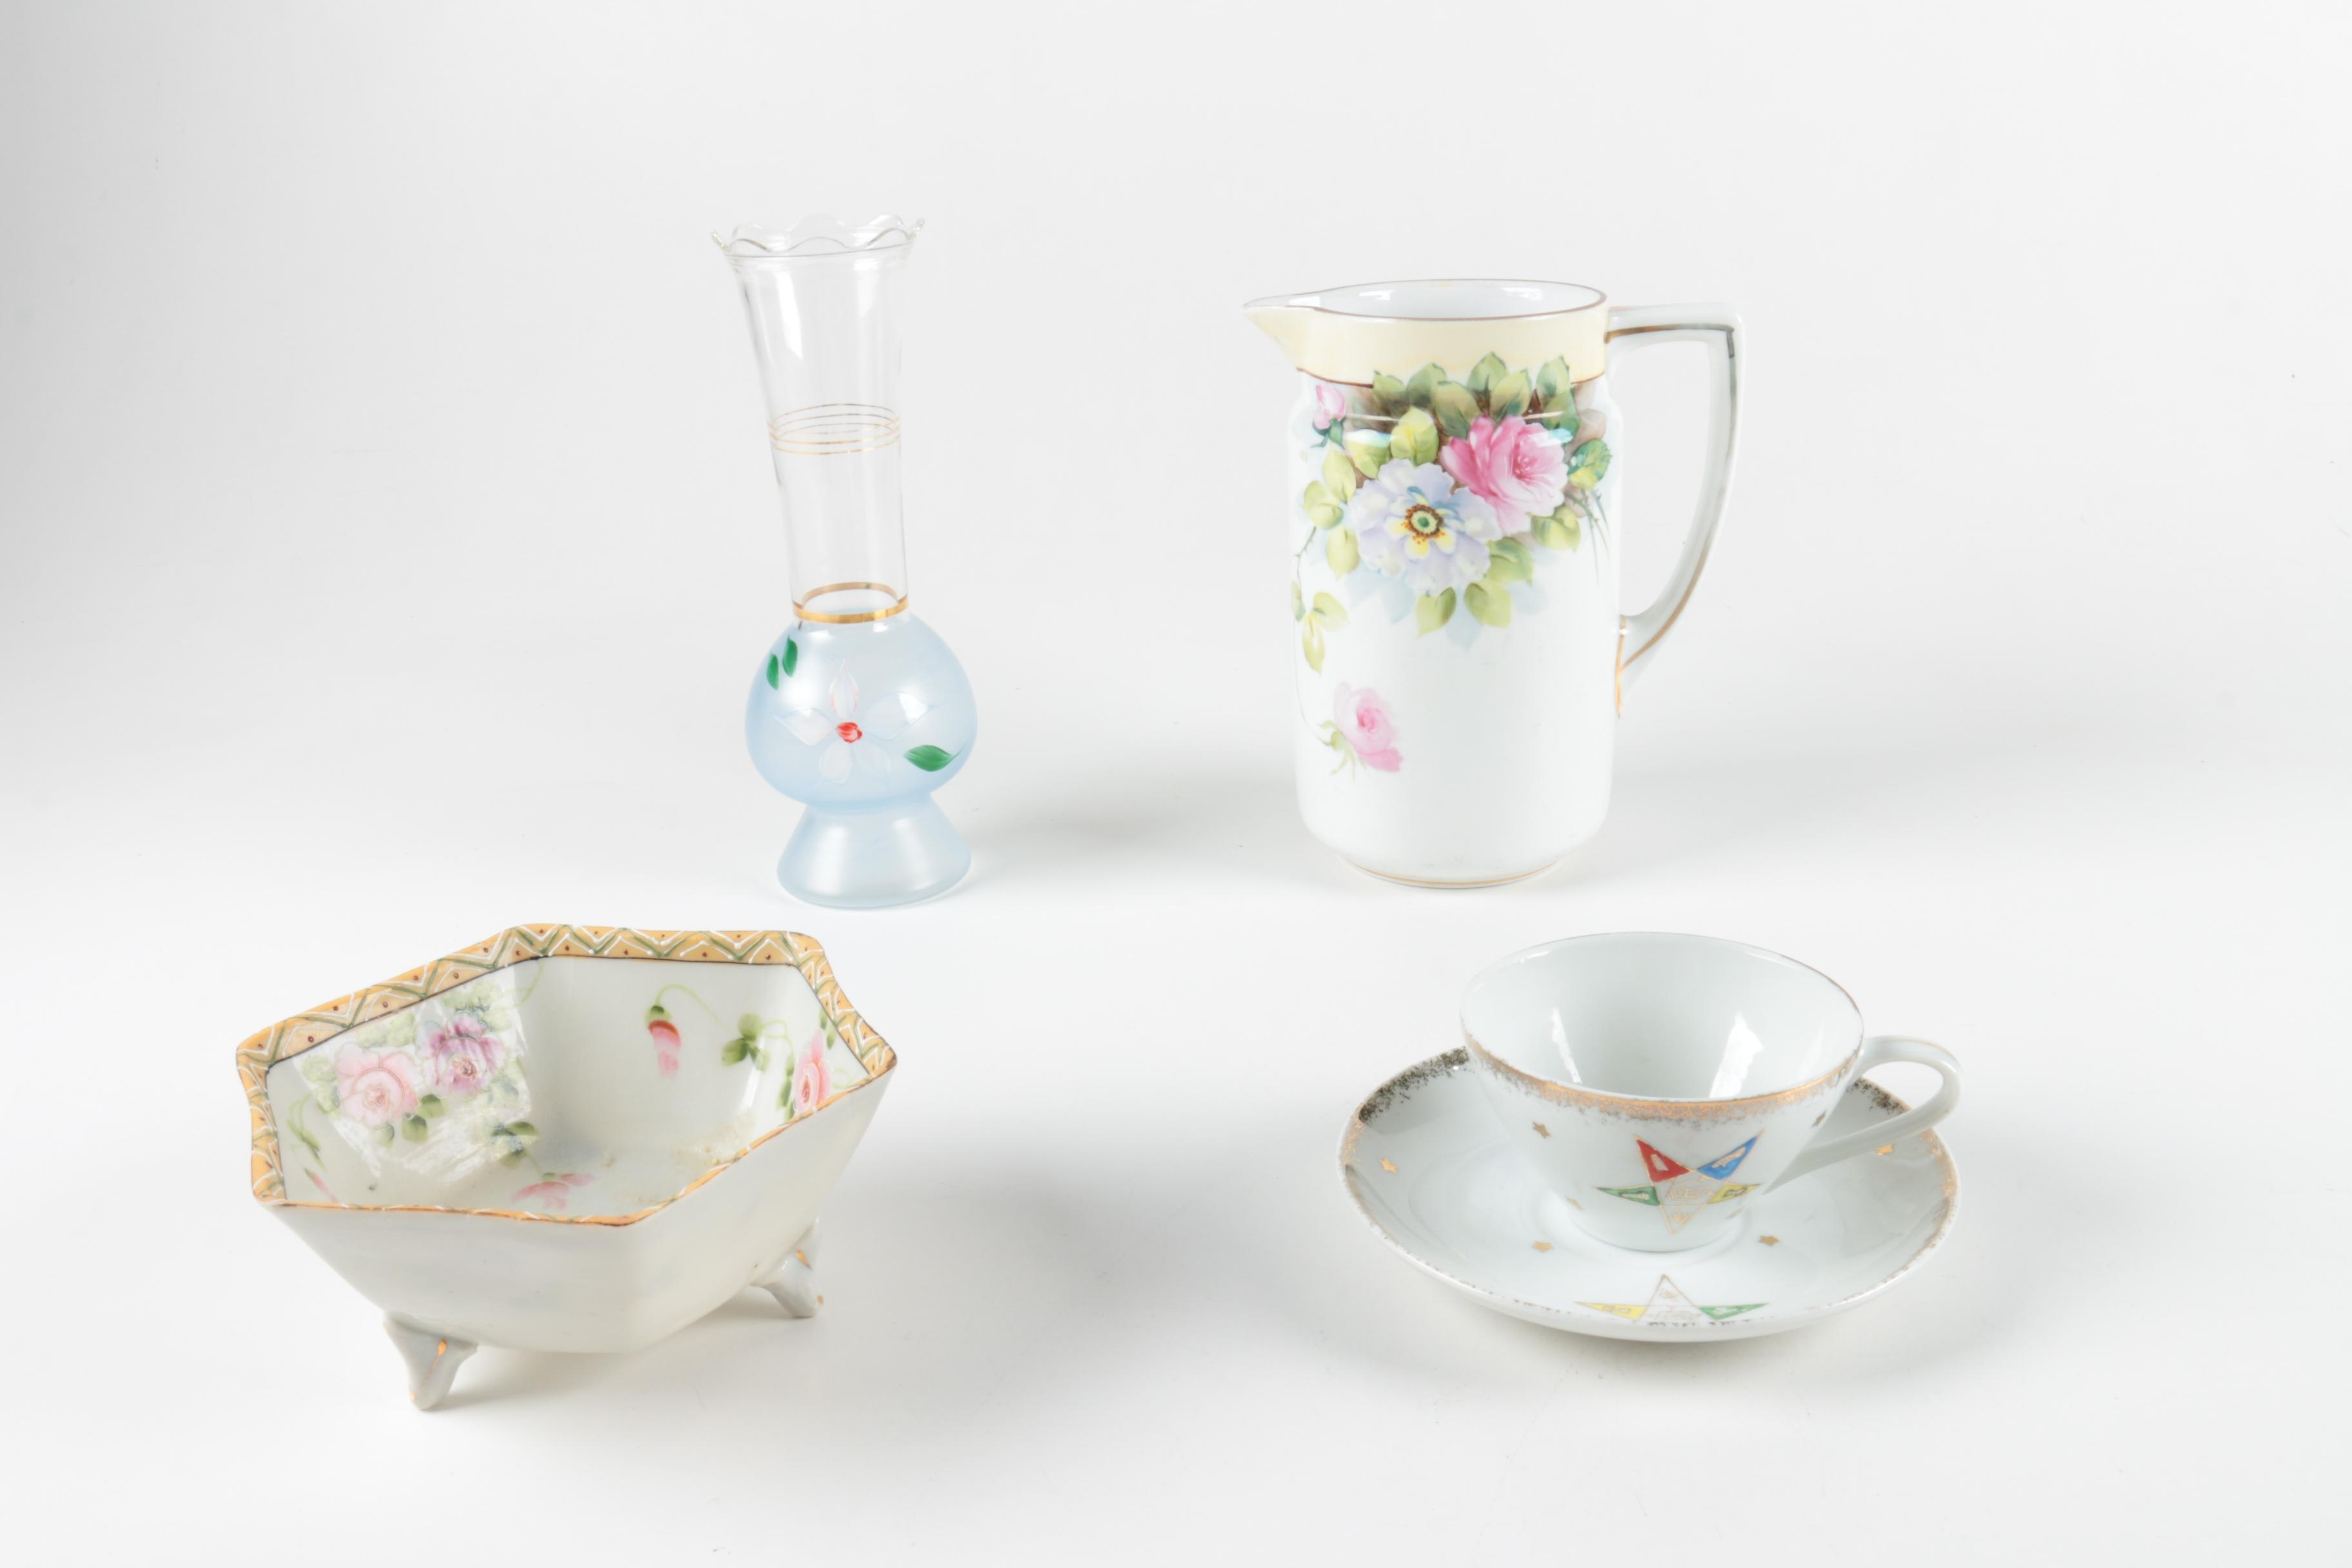 Hand Painted Porcelain Tableware and Glass Vase